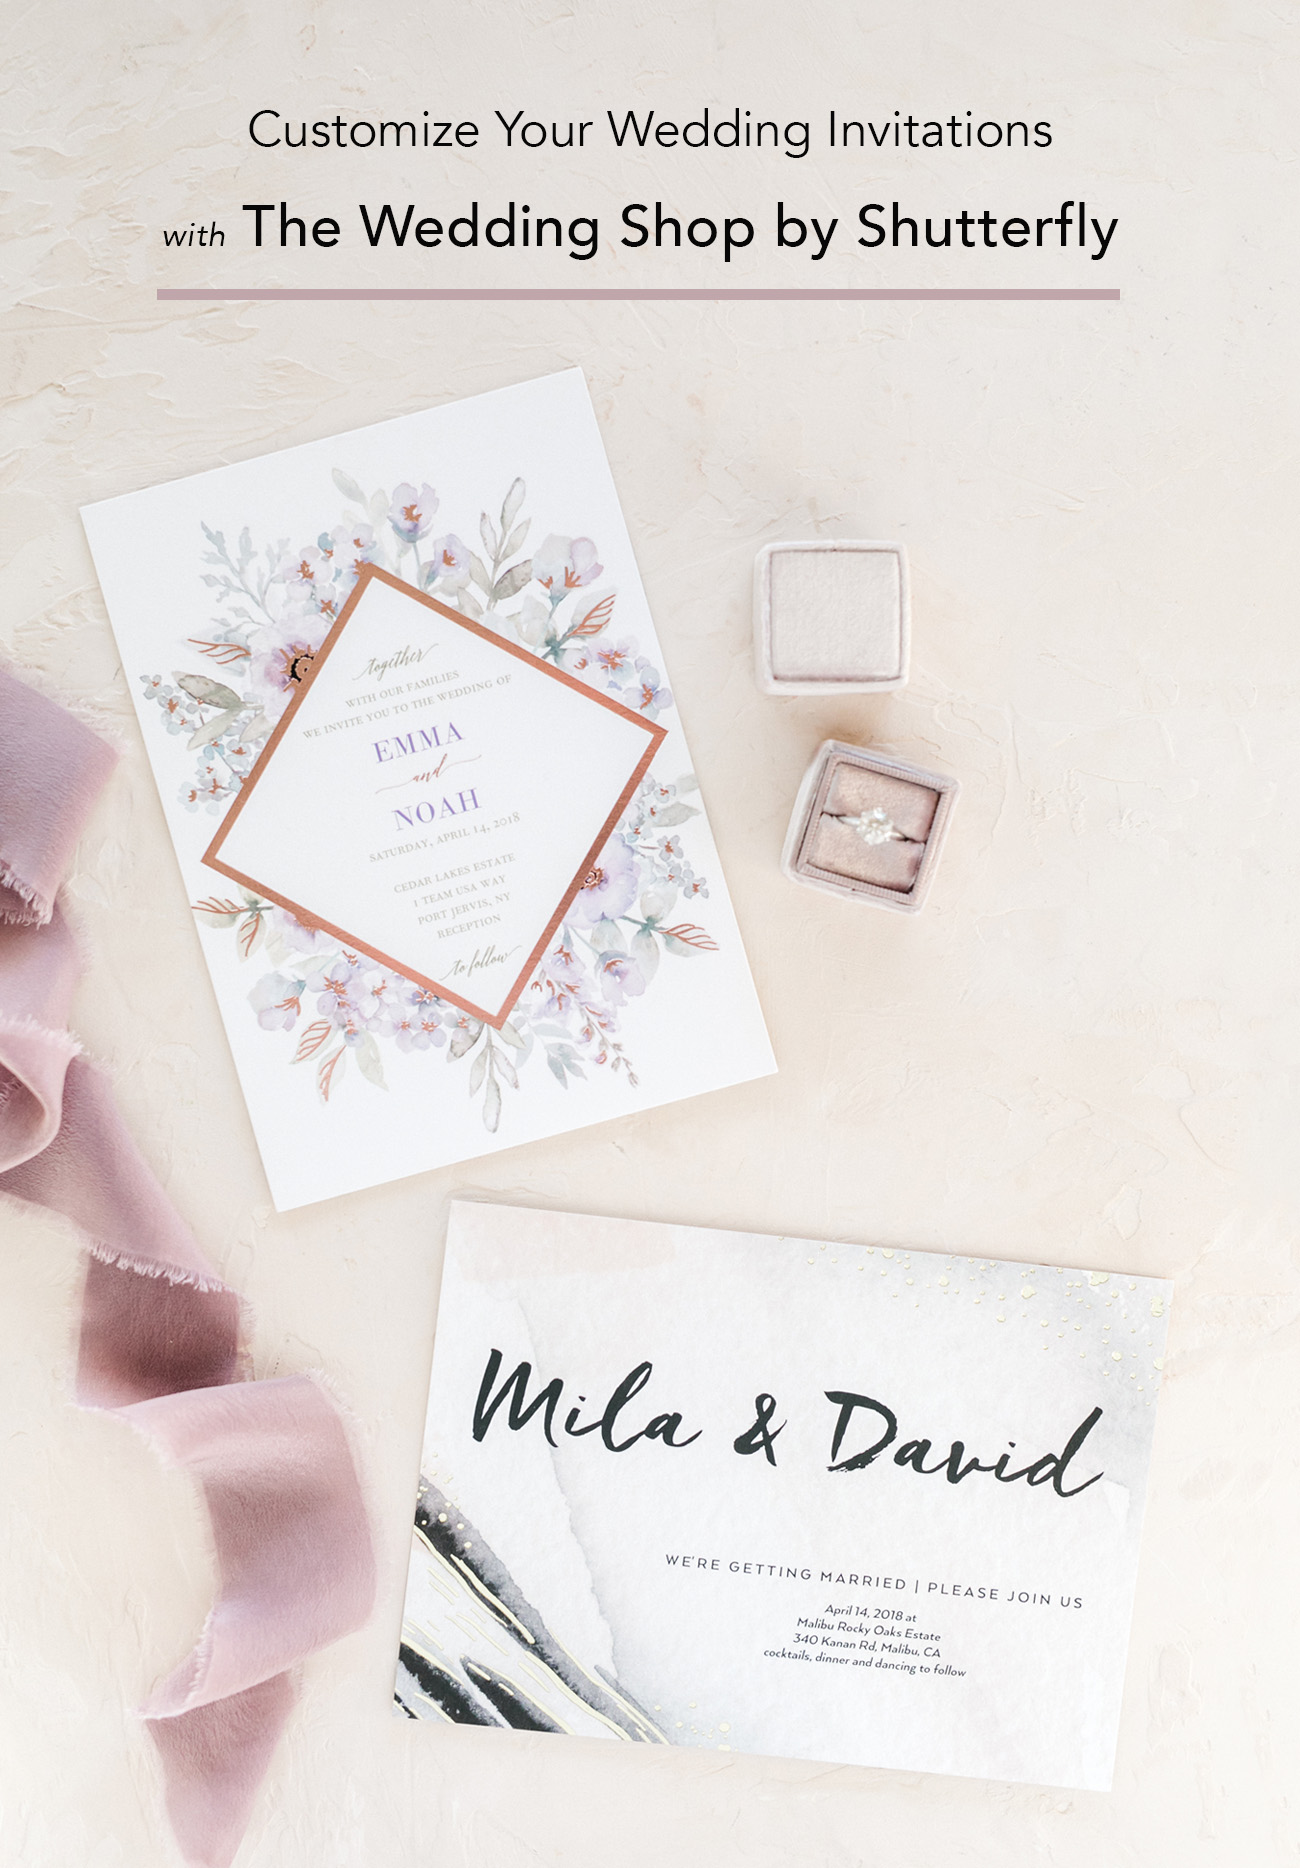 Customize Your Wedding Invites with The Wedding Shop by Shutterfly